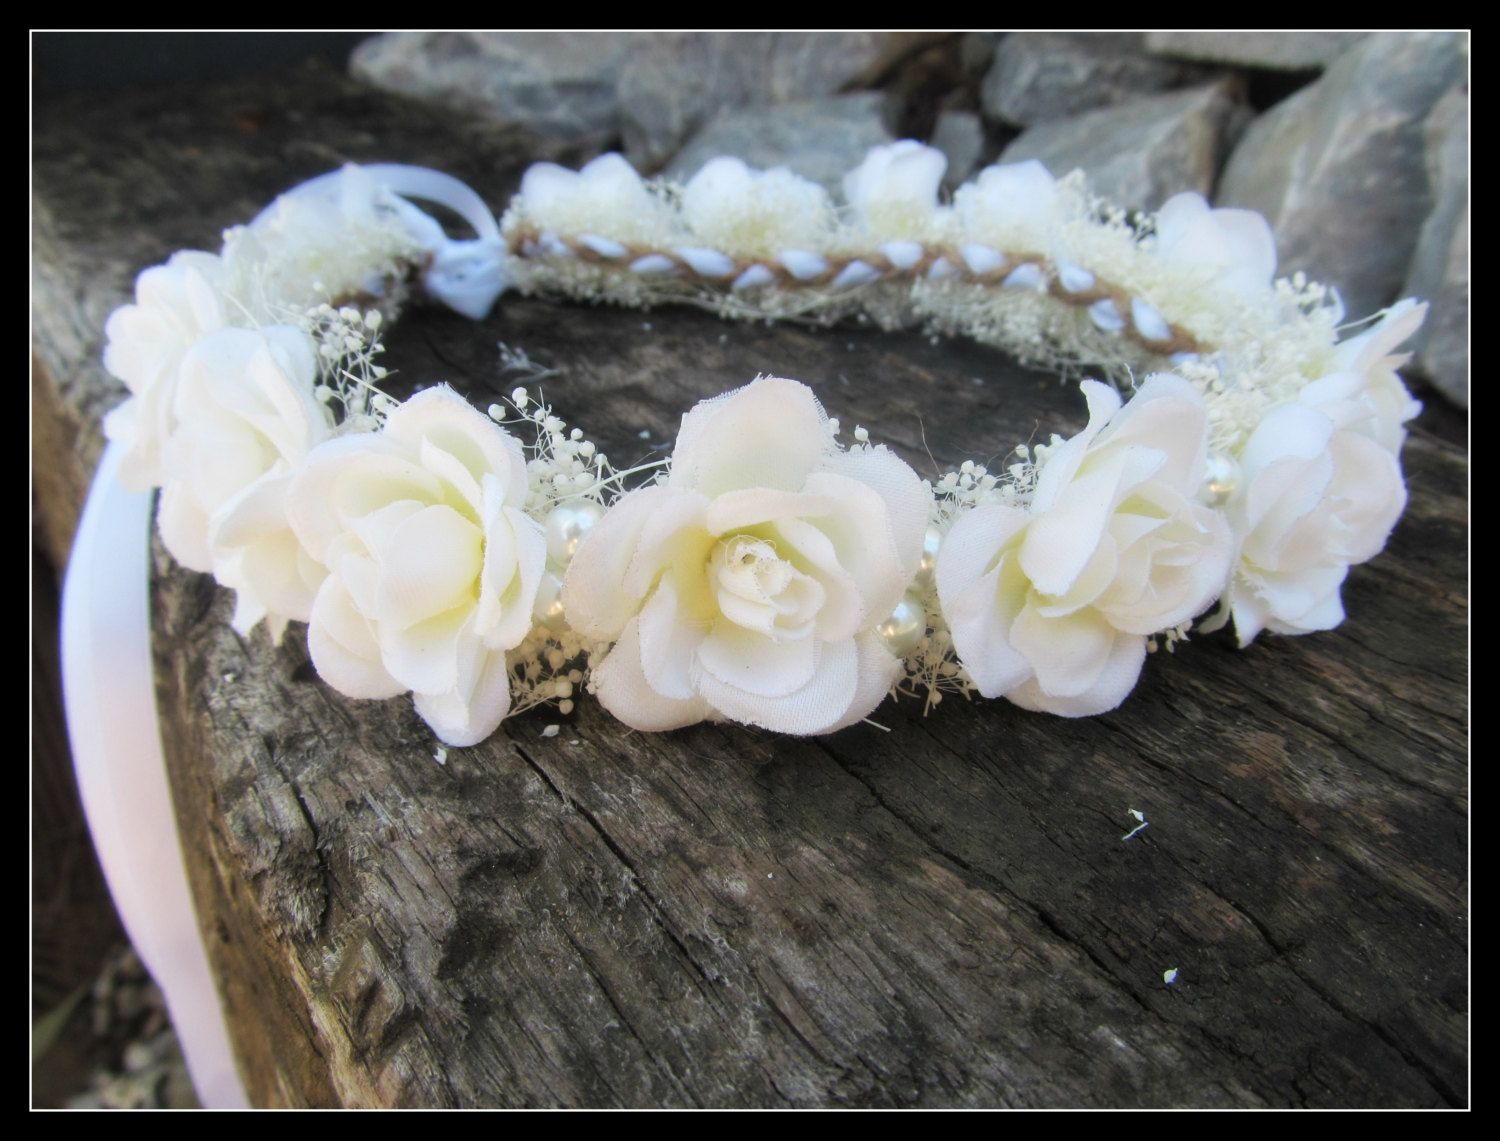 New to dieselboutique on etsy white rose crown wedding crown rose new to dieselboutique on etsy white rose crown wedding crown rose flower crown bridal crown first communion bridesmaid white flower crown pearl babys izmirmasajfo